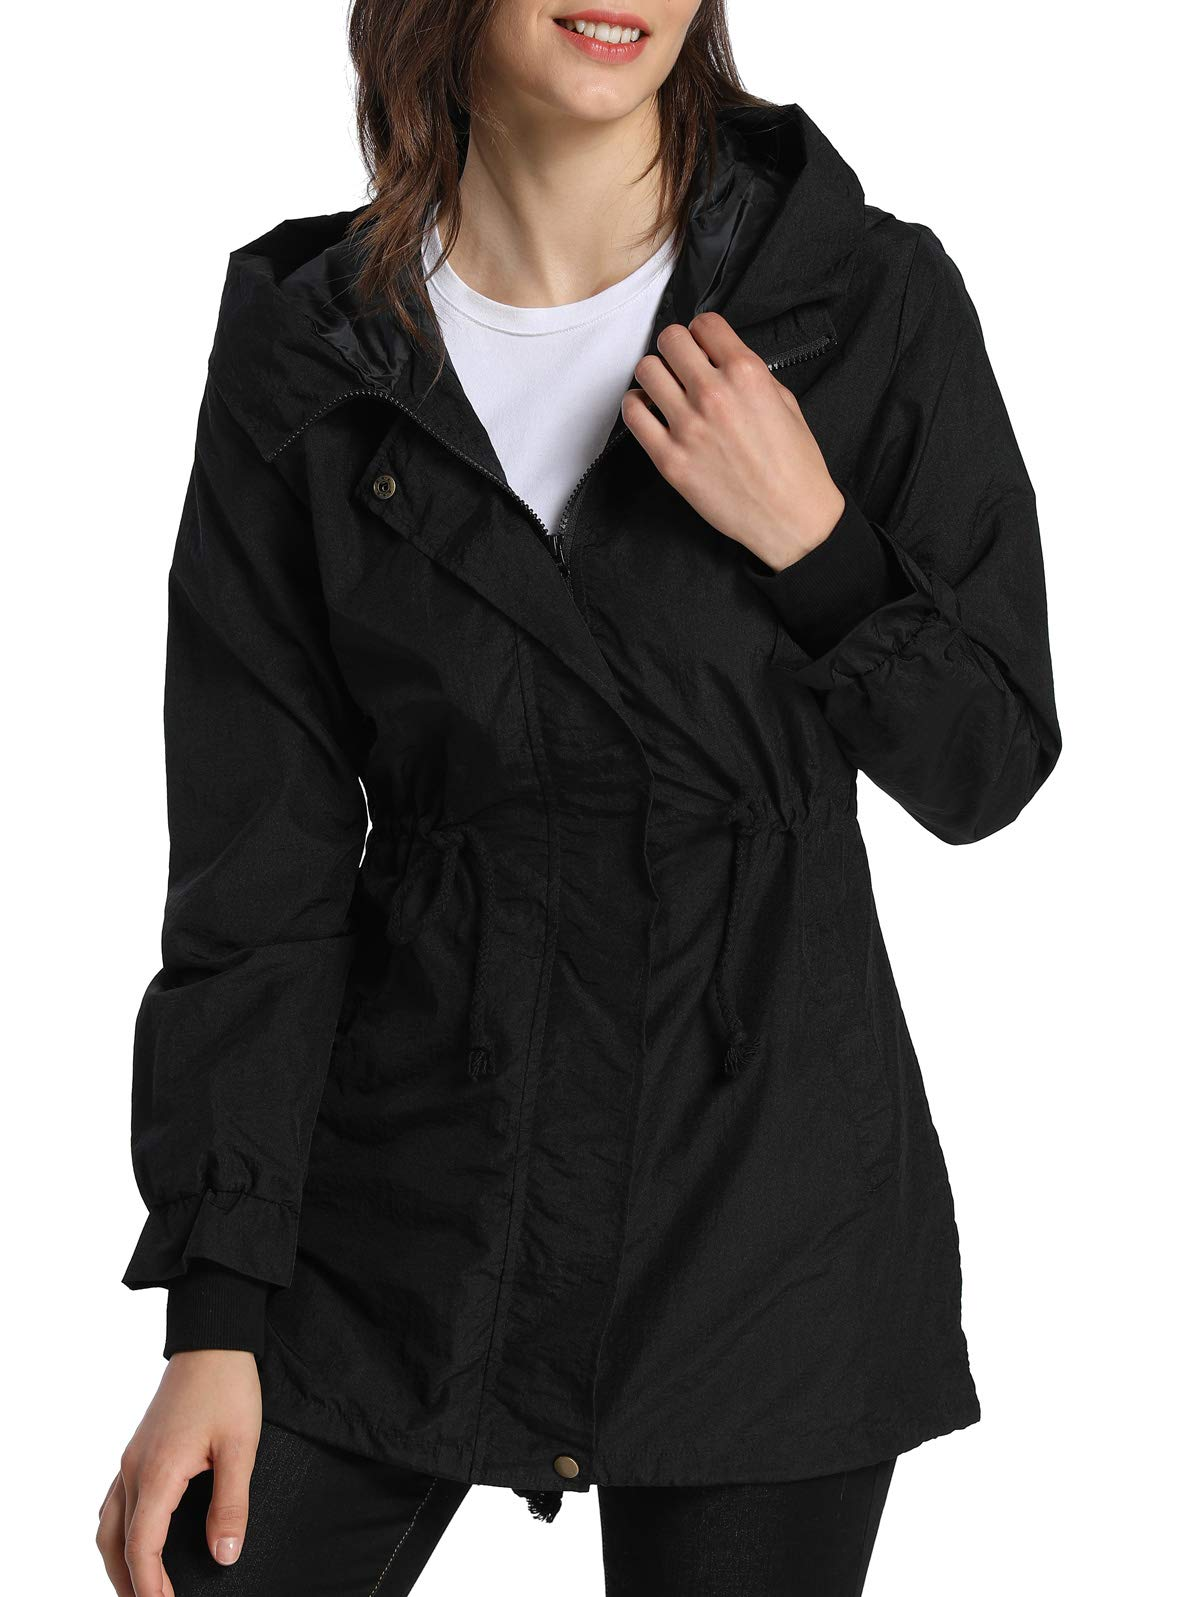 61dpkkkJYfL - 4How Ladies Outwear Breathable Waterproof Jacket Outdoor Lightweight Coat